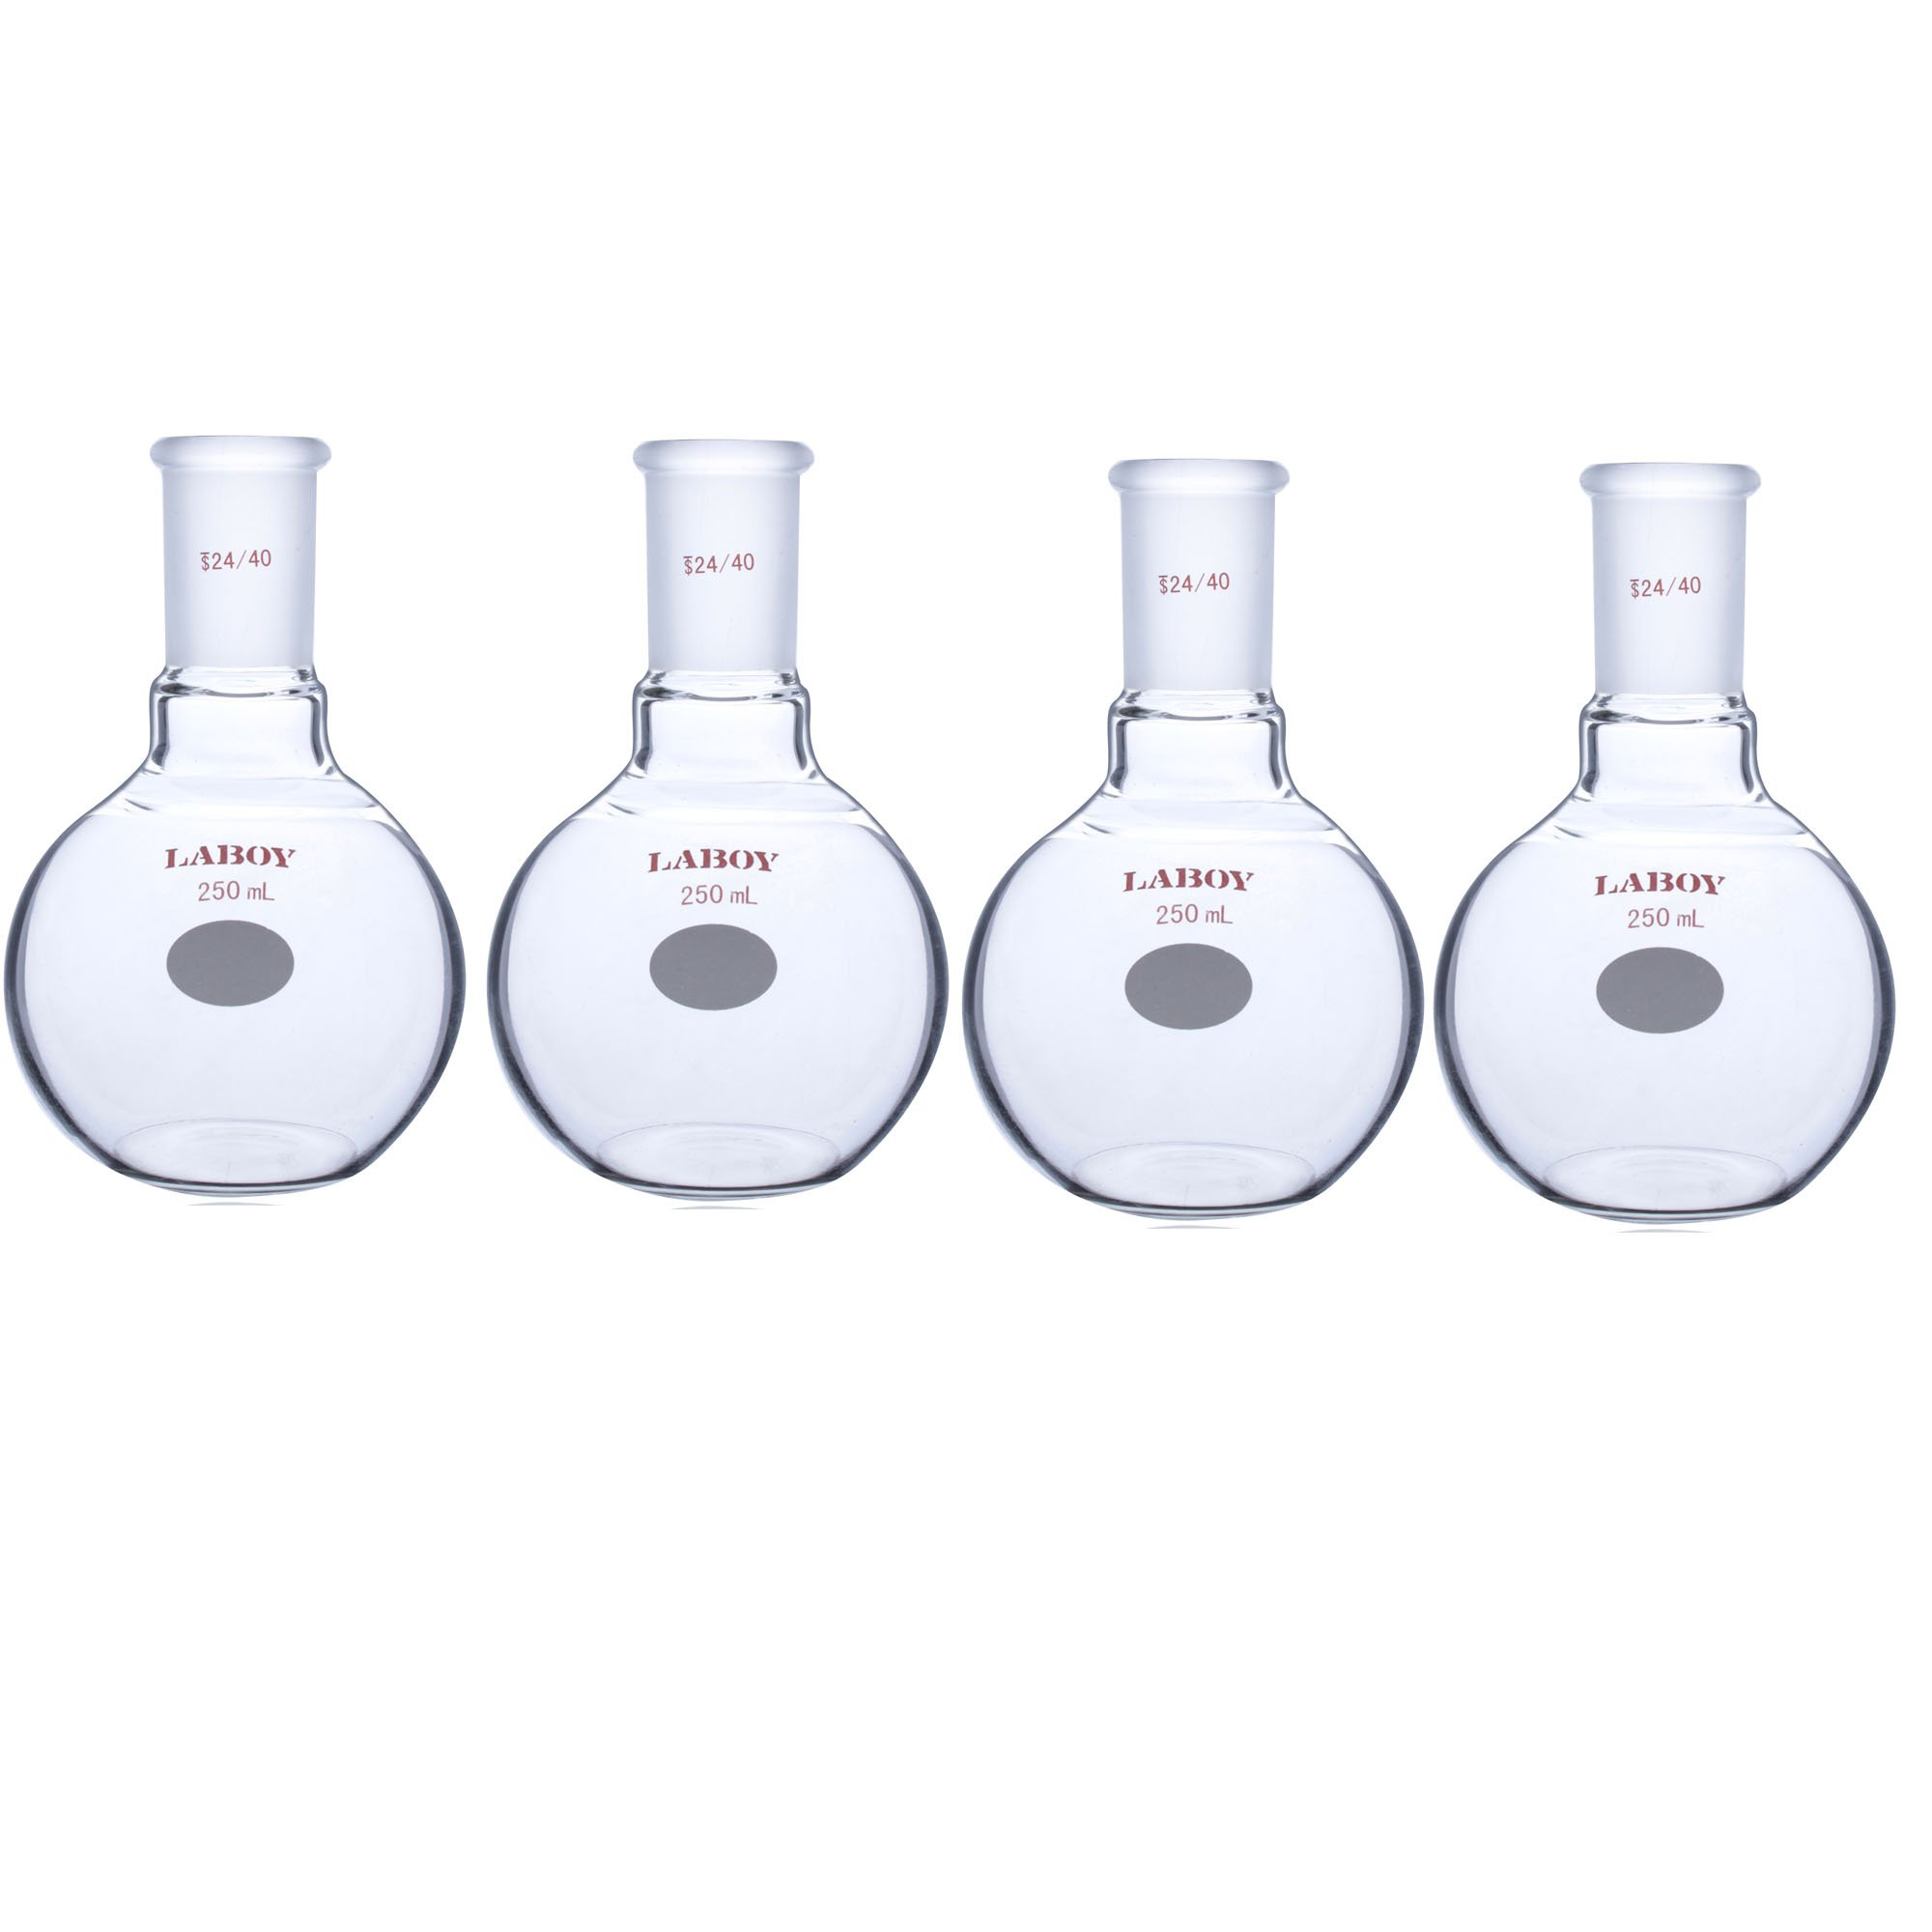 Laboy HMF010104L Glass Single Neck Flat Bottom Boiling Flask 250 mL with 24/40 Glass Joint (Pack of 4)